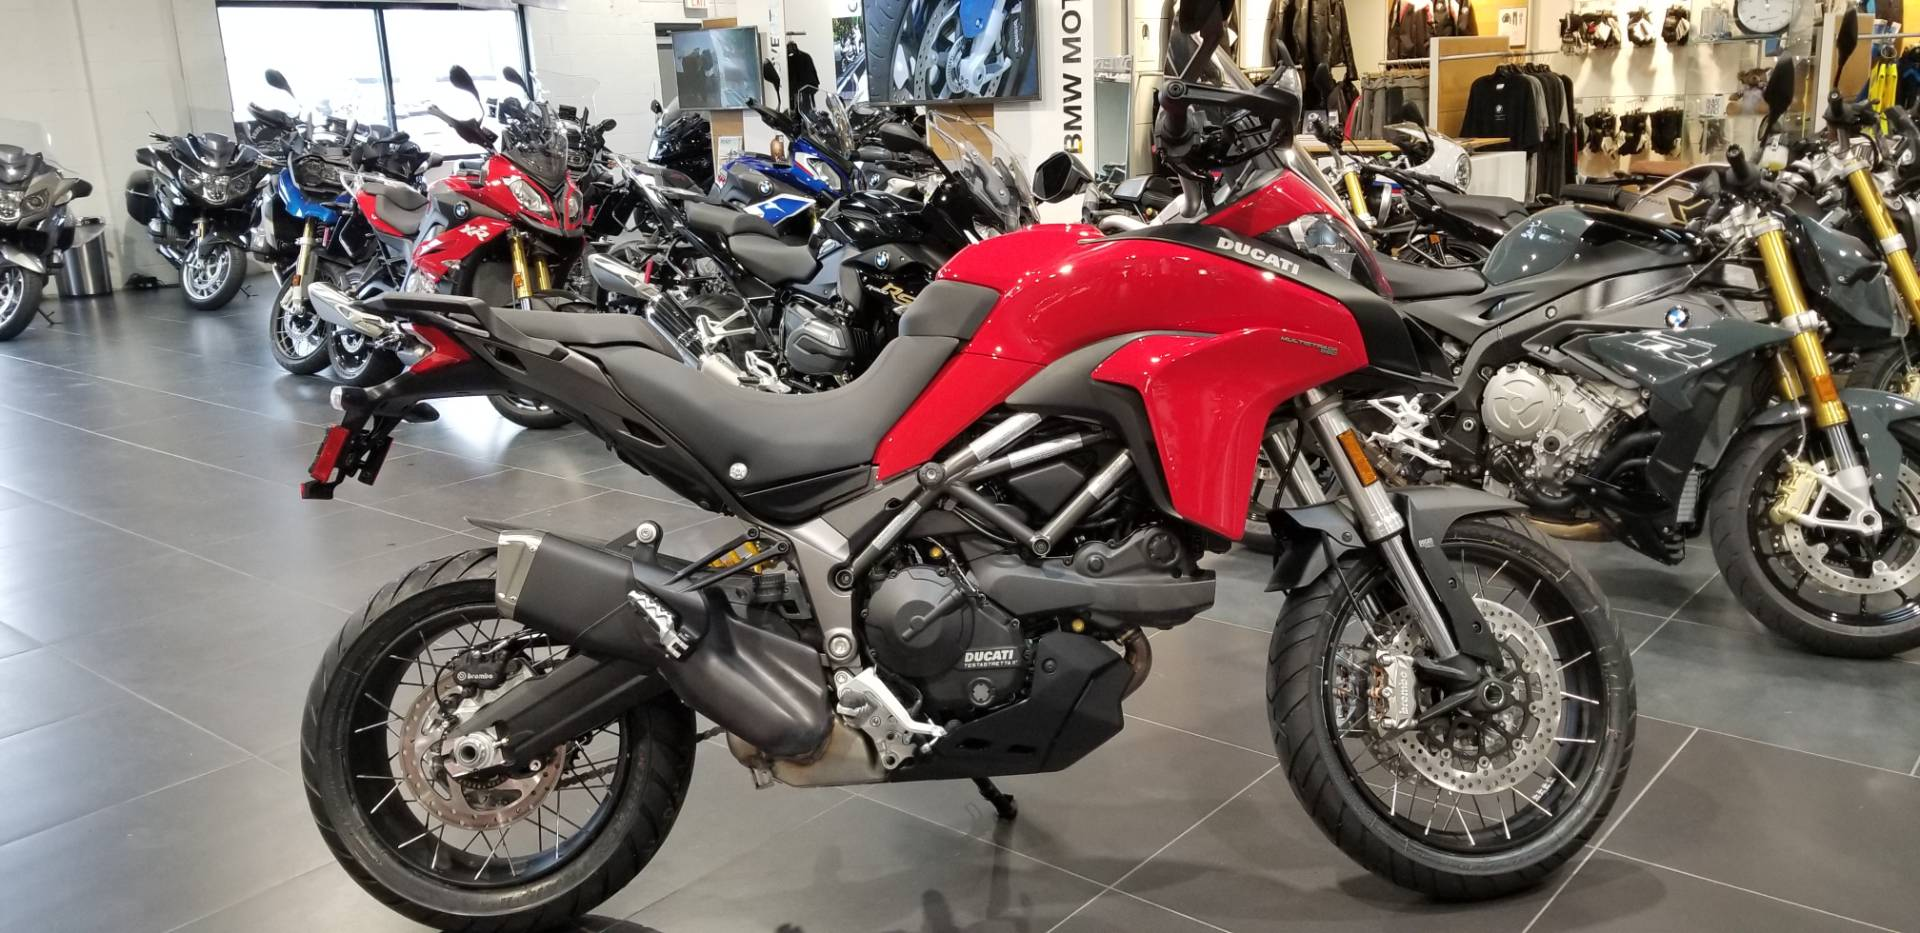 new 2018 ducati multistrada 950 motorcycles in. Black Bedroom Furniture Sets. Home Design Ideas